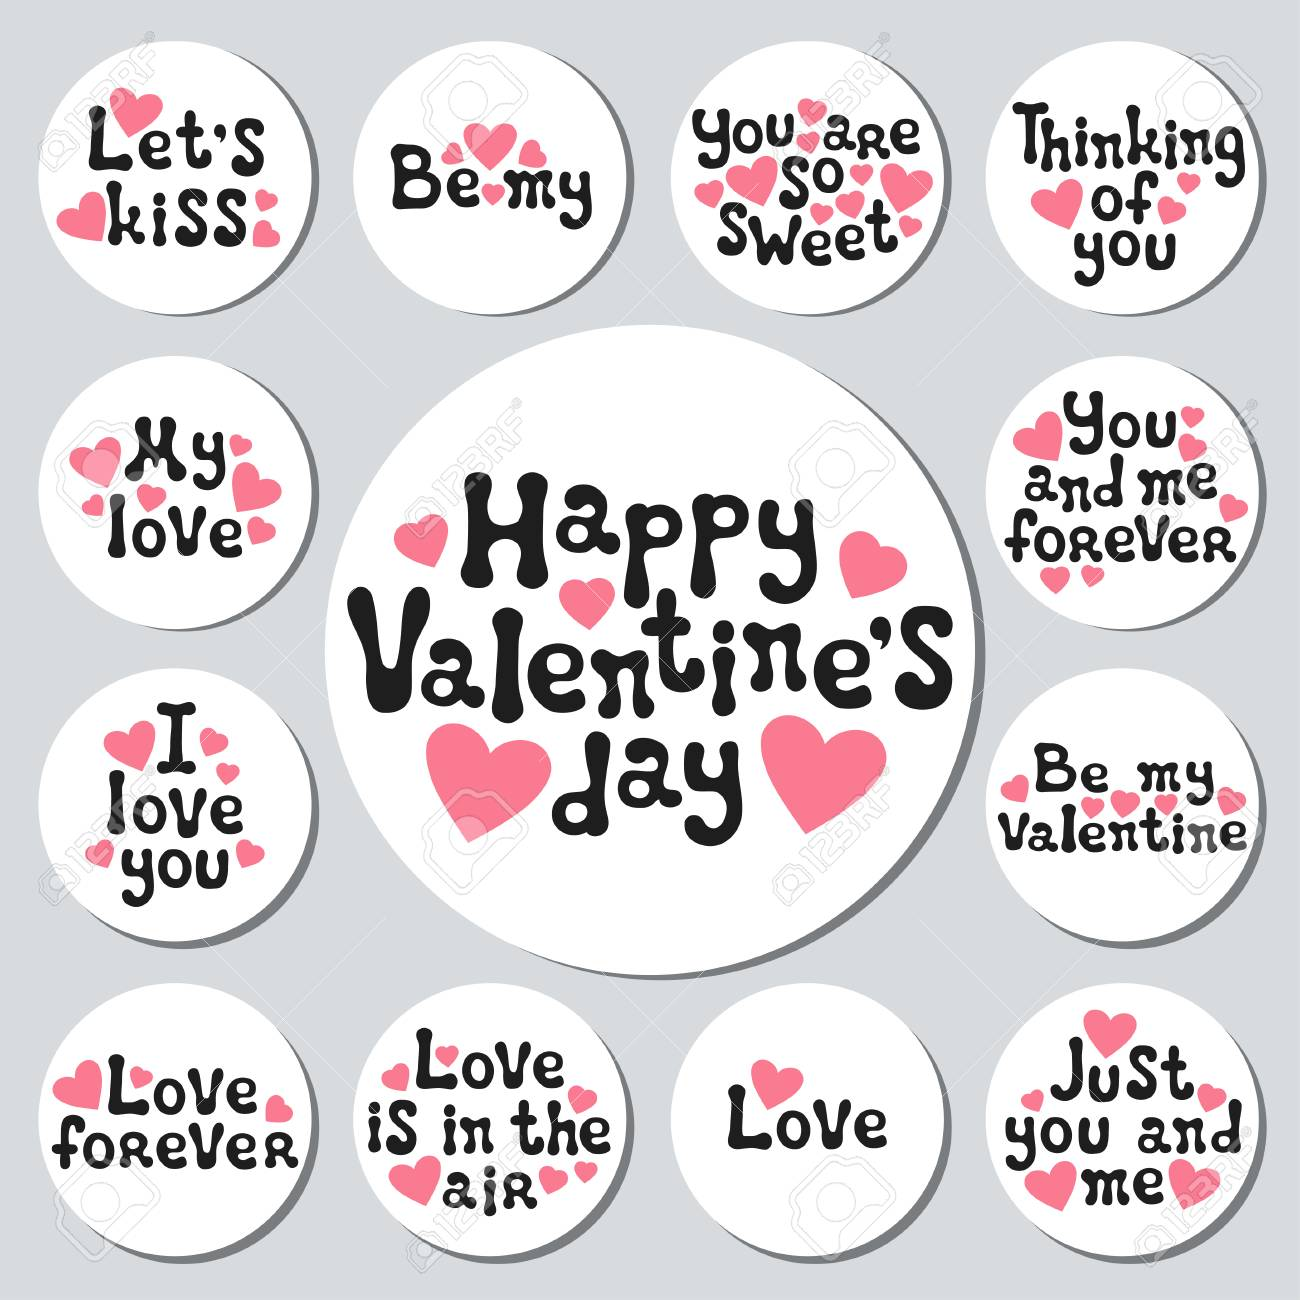 aa69f4c1af9 Valentines day round stickers set. Romantic labels badges. Hand drawn  decorative element. Love